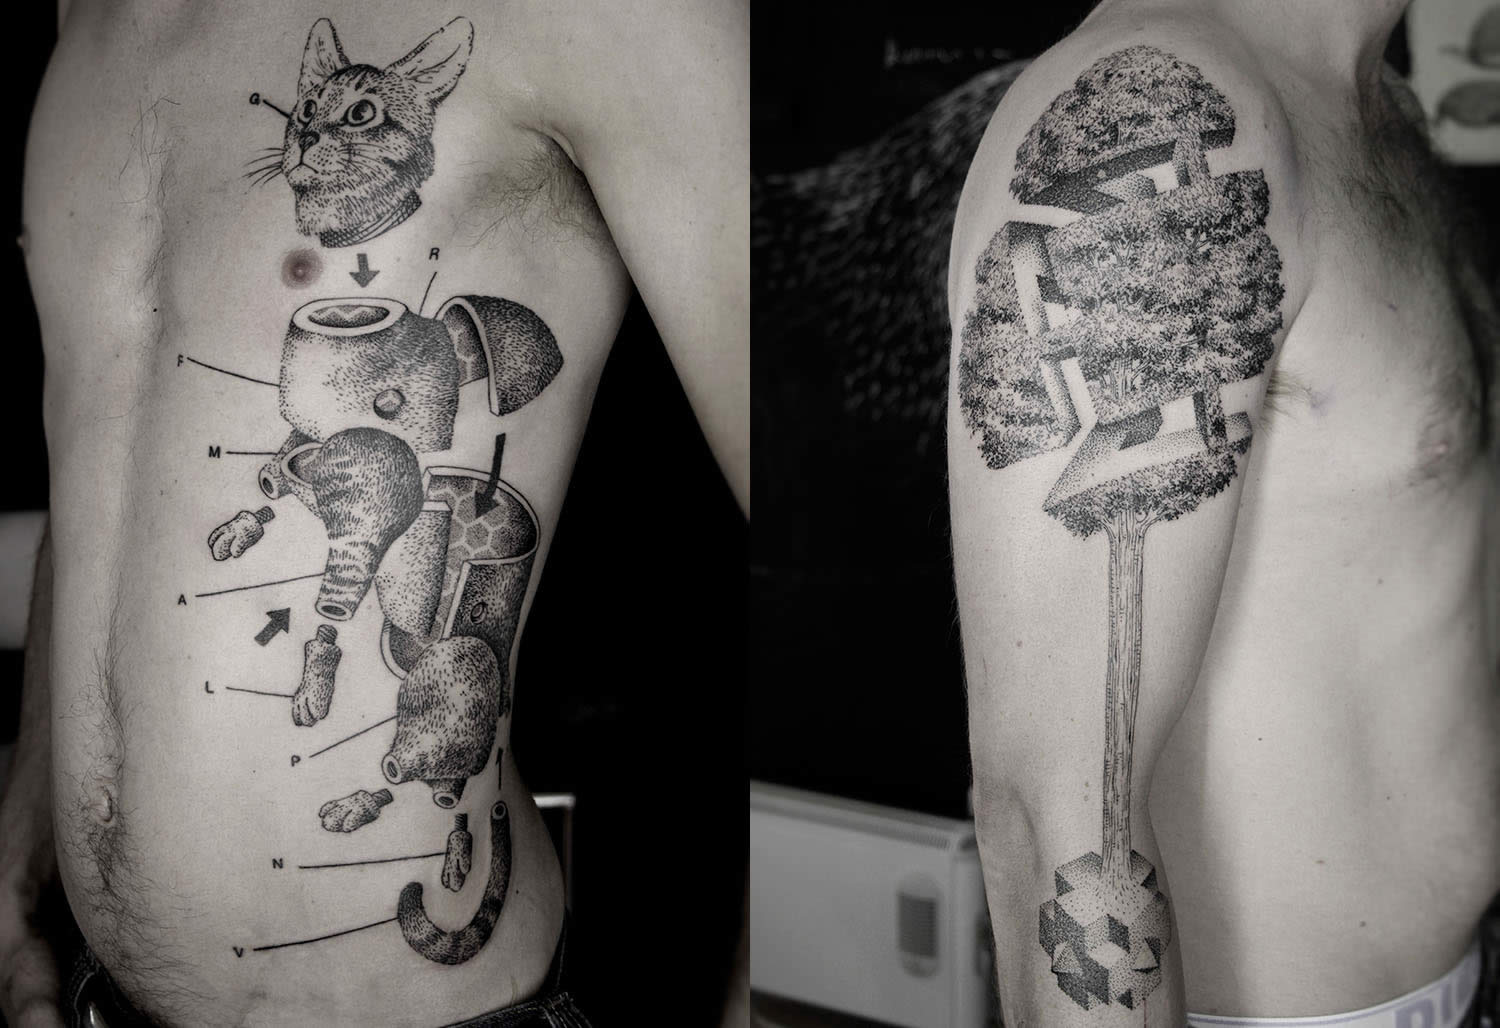 cut up cat tattoo and 3d tree escher style by ottorino d'ambra